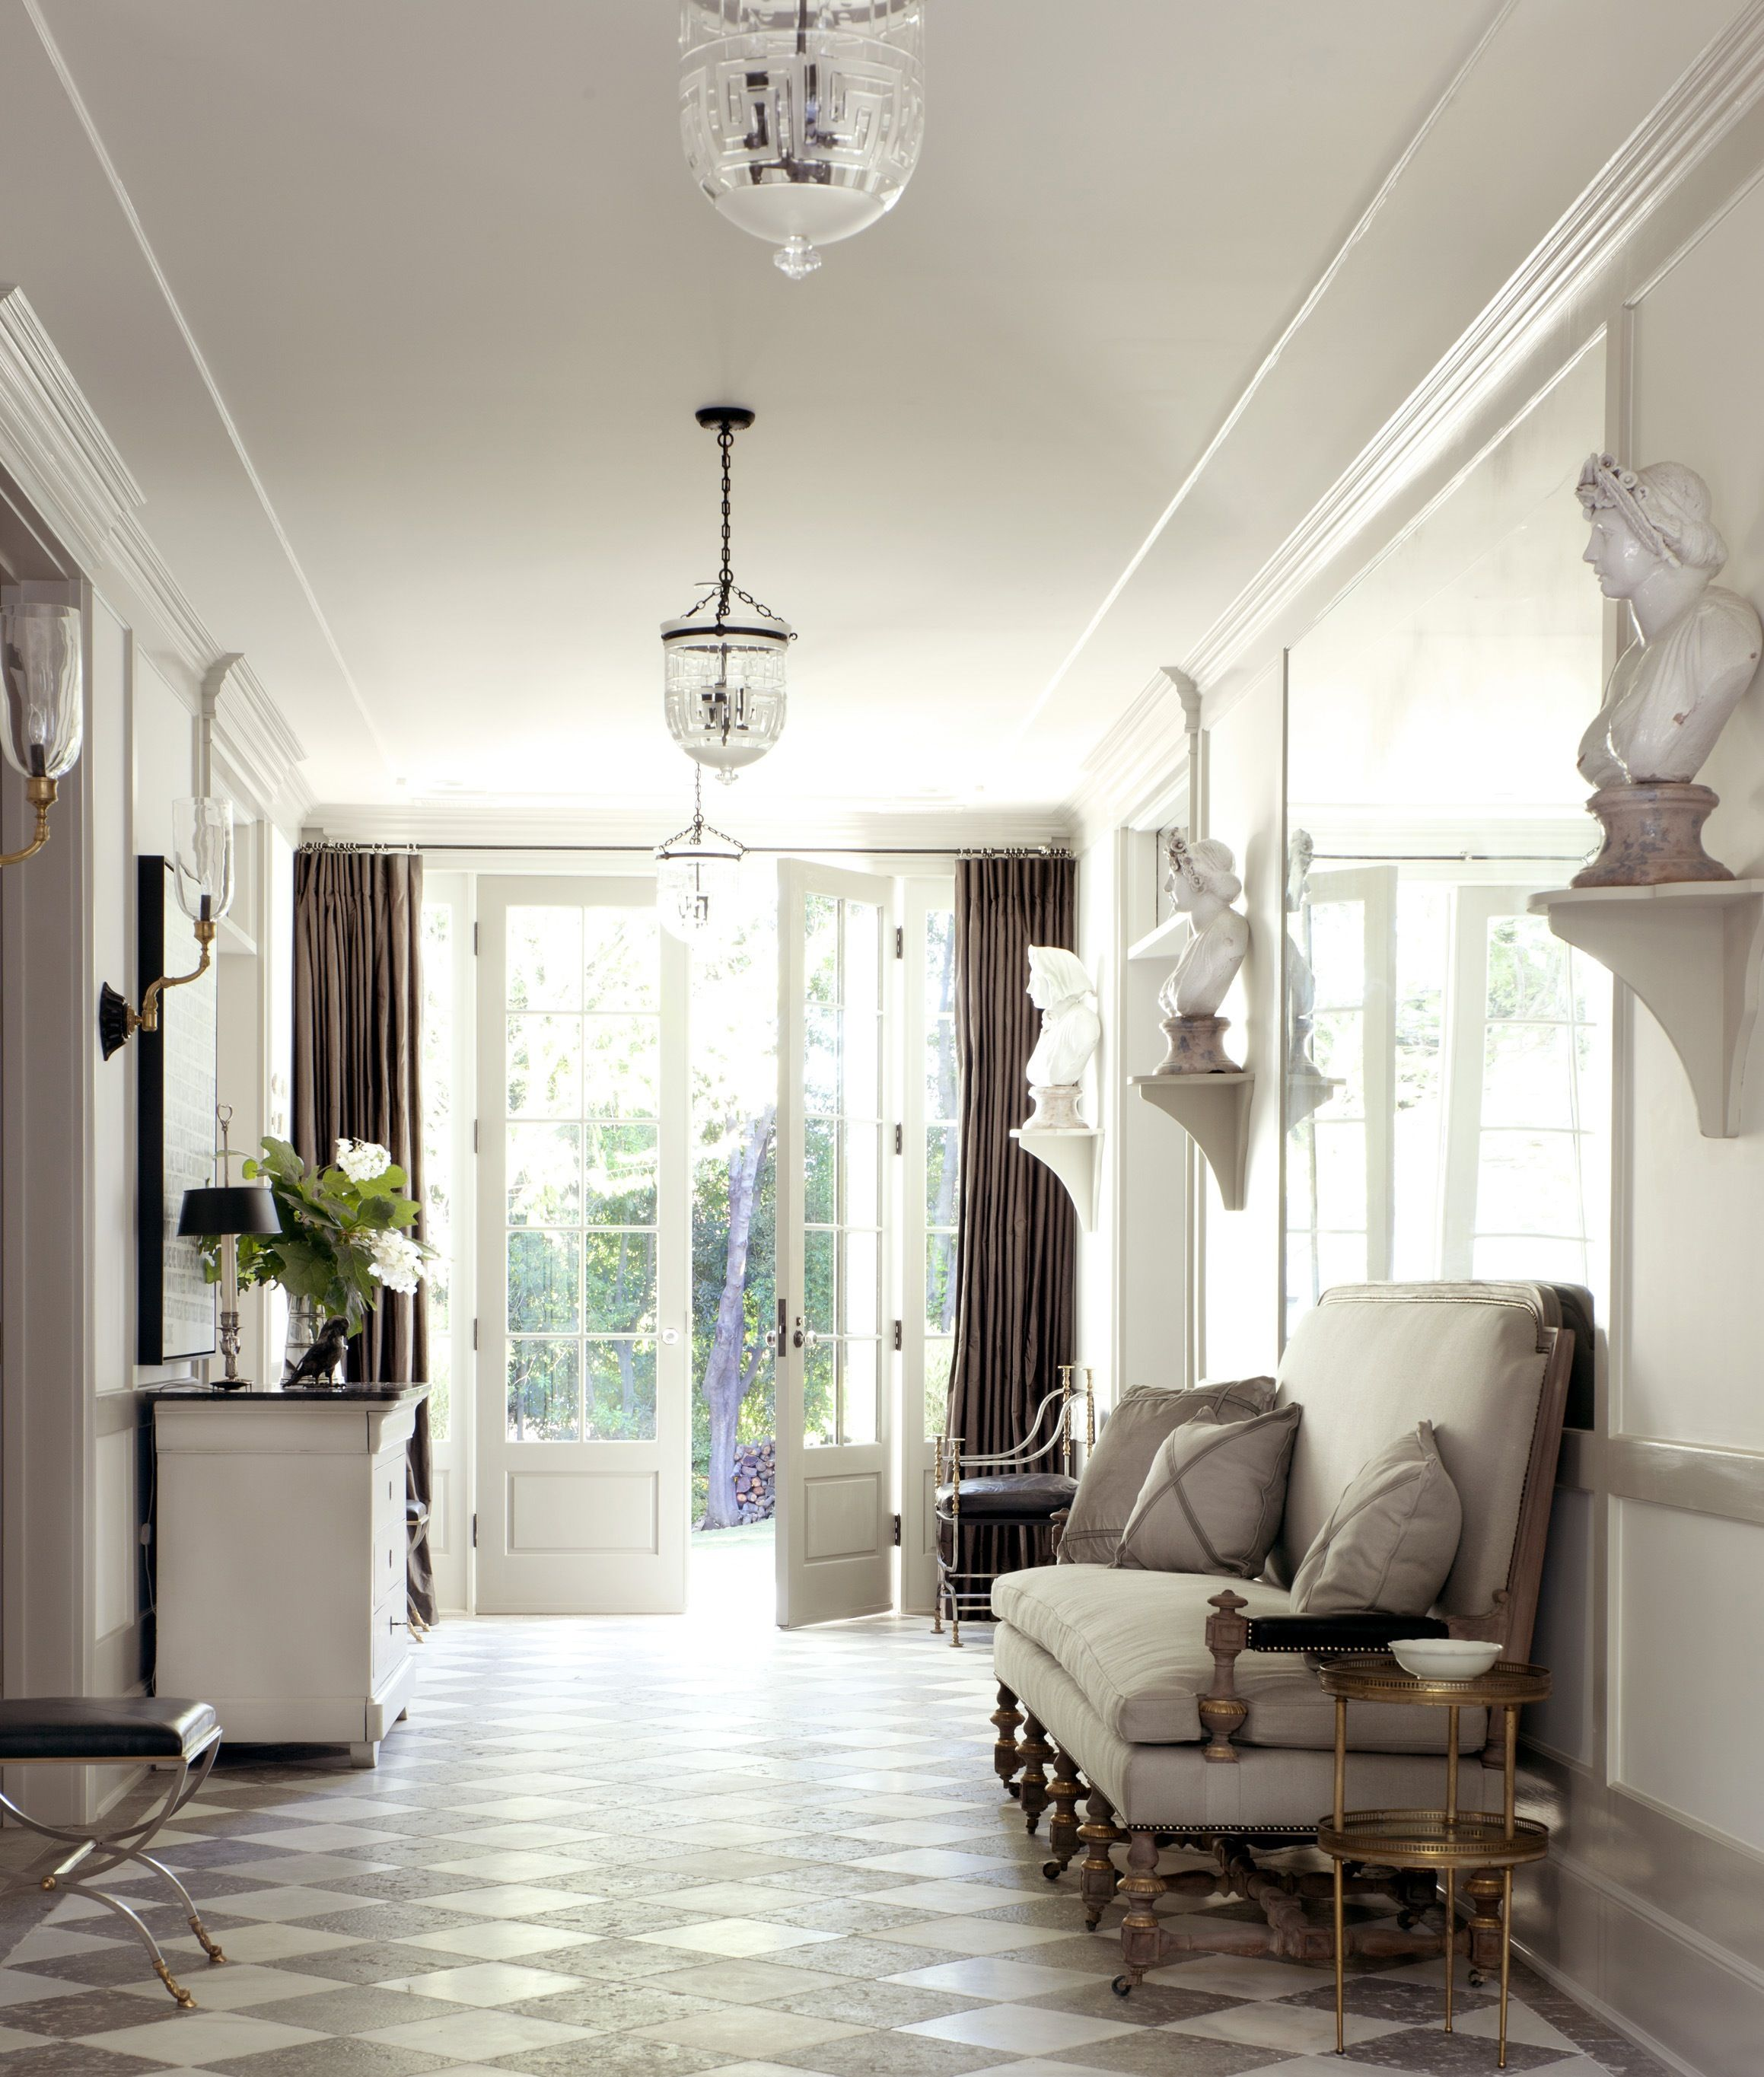 Neutral Bliss... | For the Home | Pinterest | Hallways, Bliss and ...